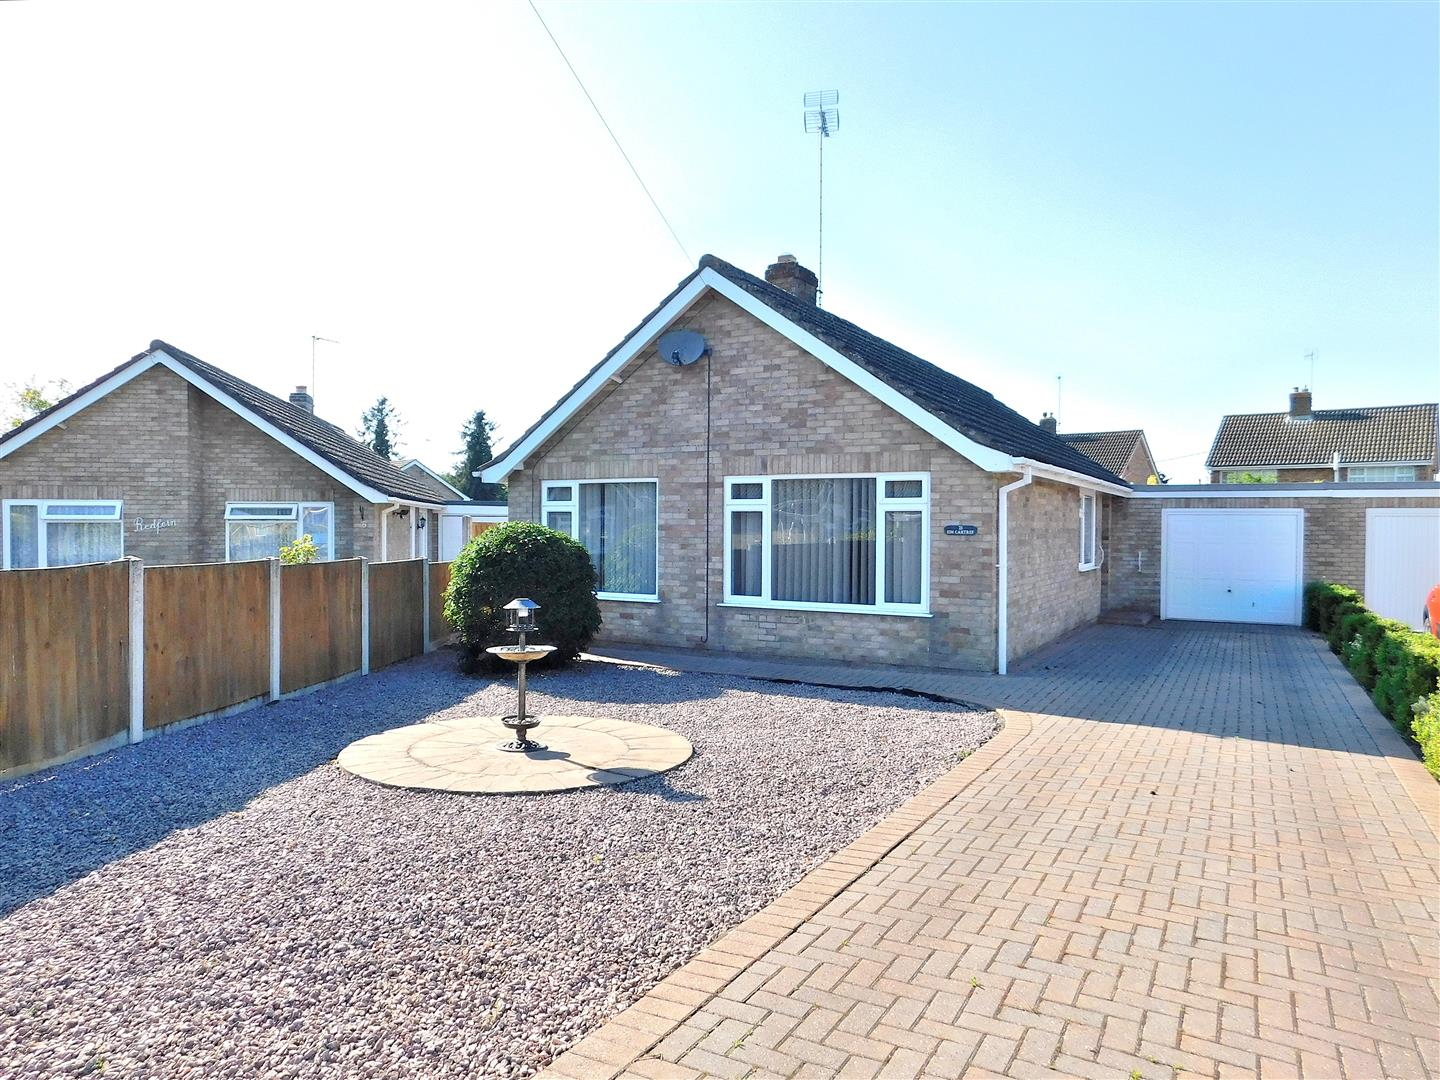 3 bed detached bungalow for sale in King's Lynn, PE30 3LZ - Property Image 1